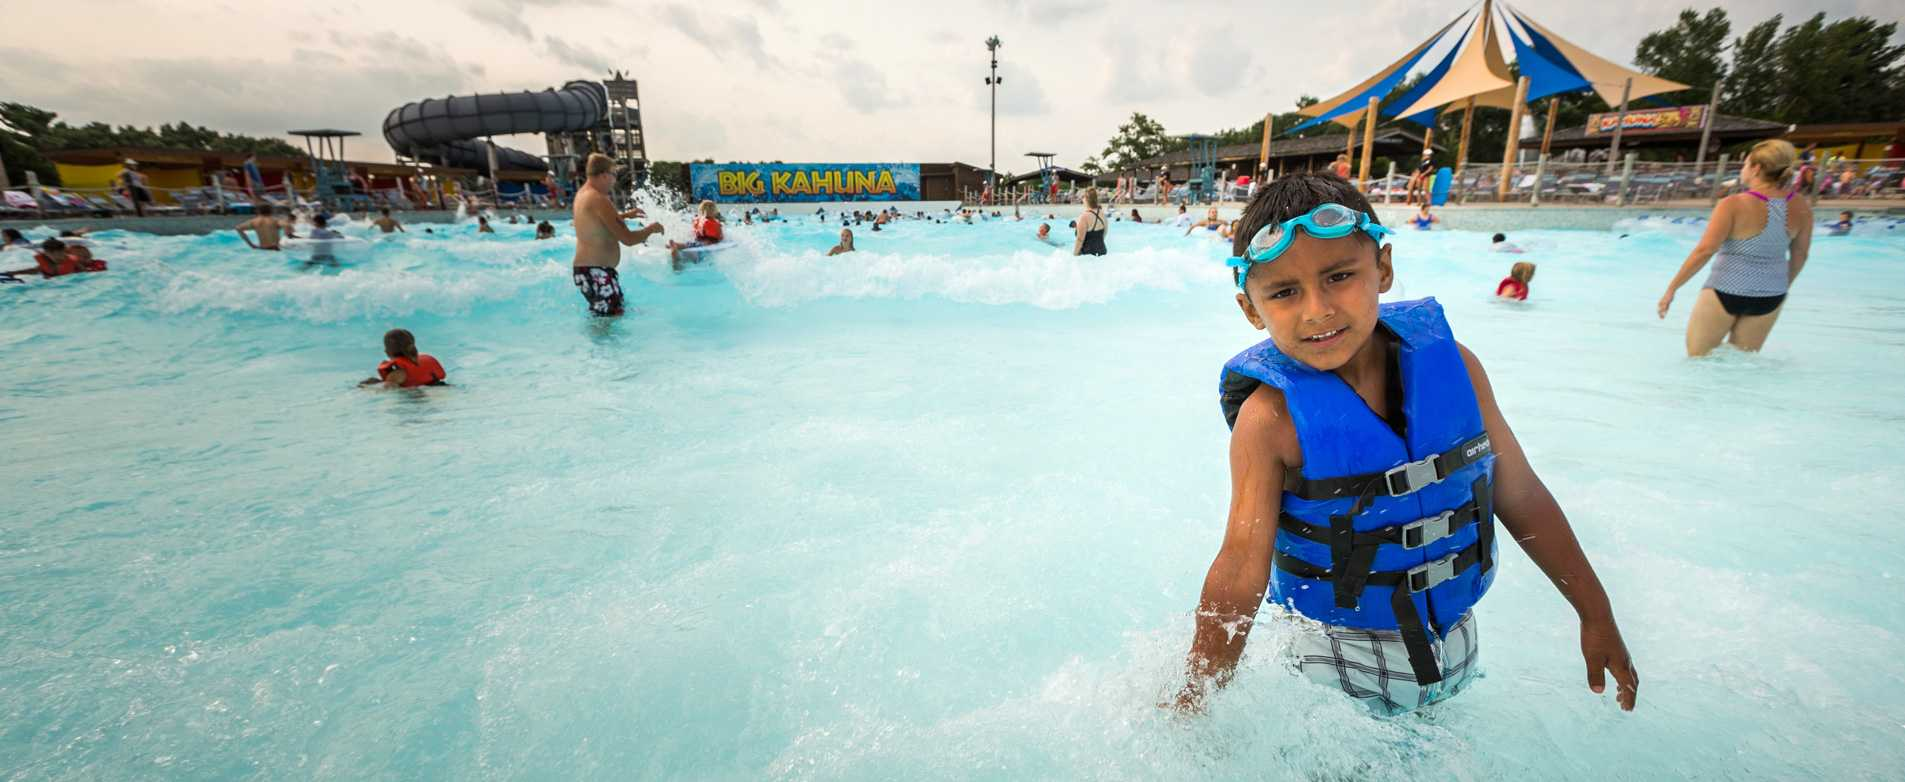 Boy at Big Kahuna Wave Pool